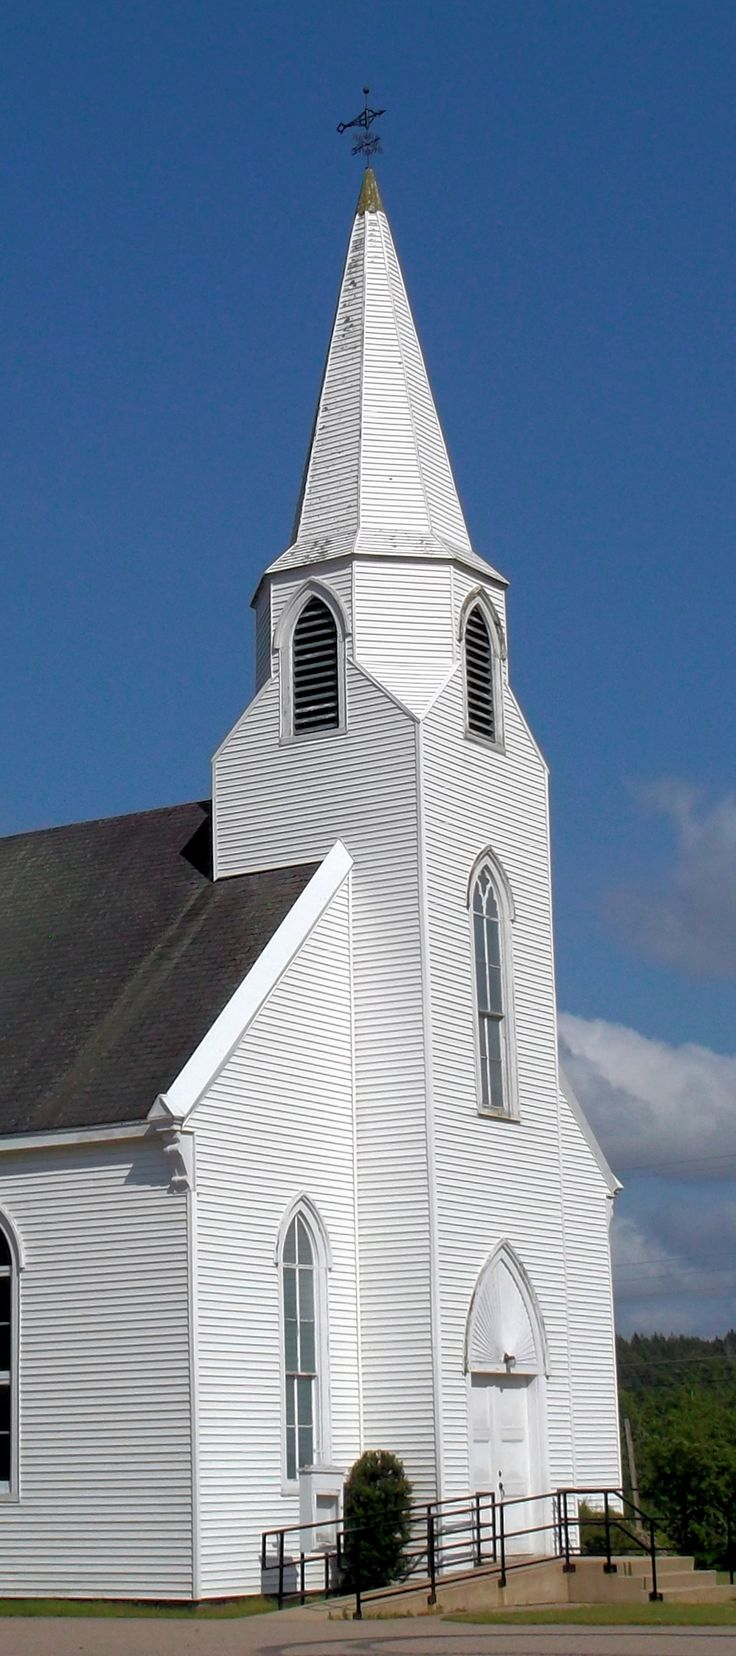 """Small Country Church 3:  steeple of an old white clapboard Baptist church in the Annapolis Valley of Nova Scotia, against a bright blue sky,  Image size 1200 x 2700px (300ppi); prints at 4 x 9""""."""